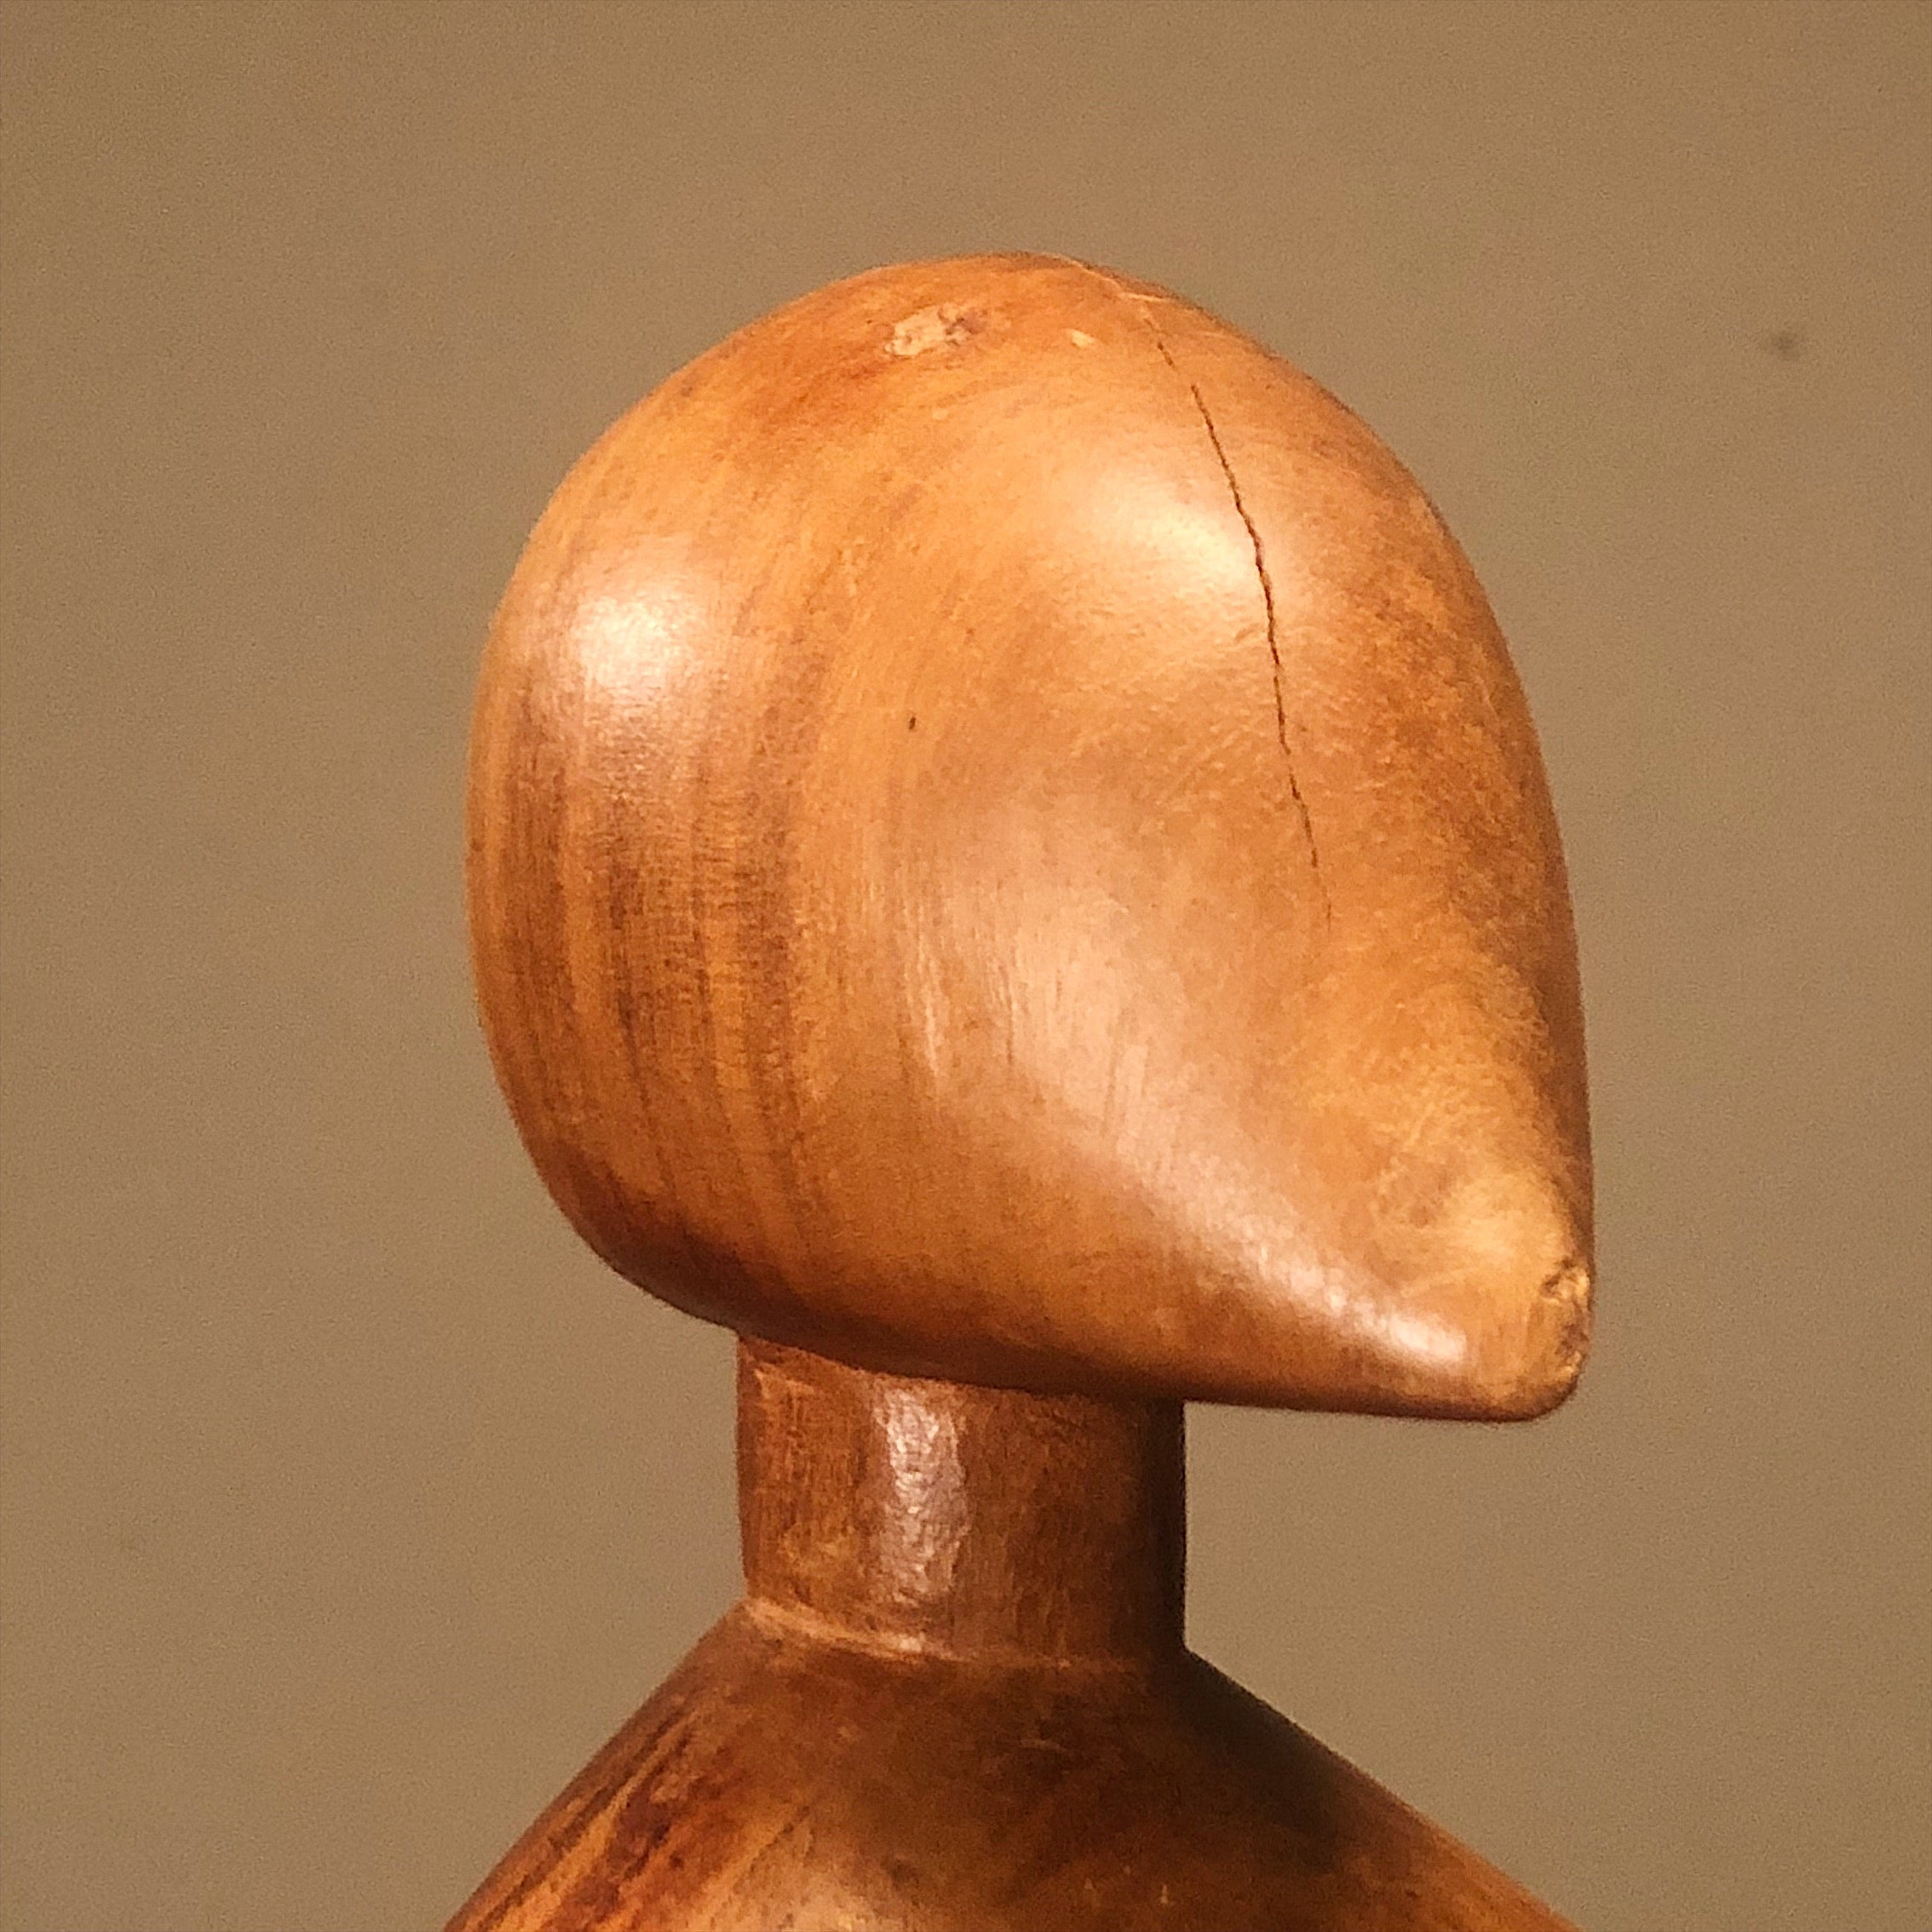 Indentation on Unusual Mod Wood Sculpture of Human Form from 1950s